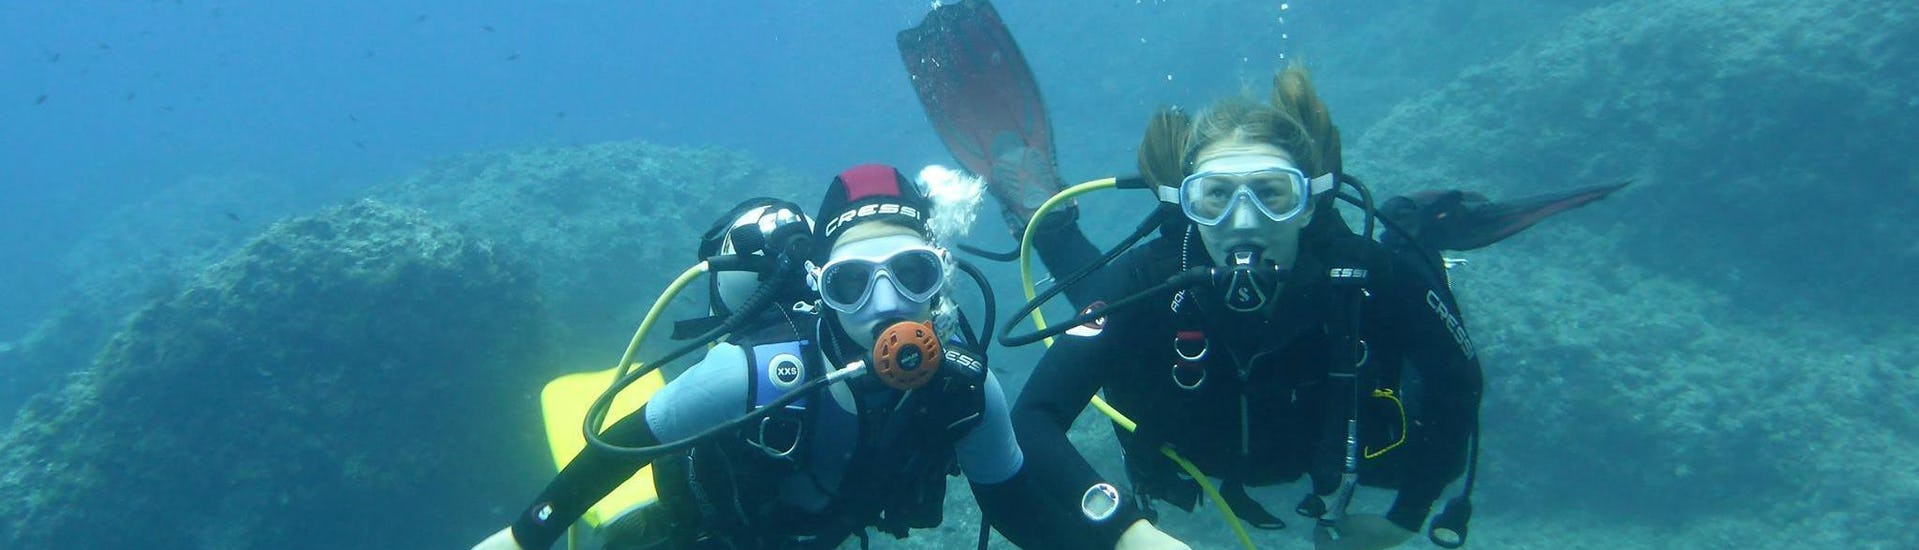 Scuba Diving Course for Beginners - PADI Scuba Diver